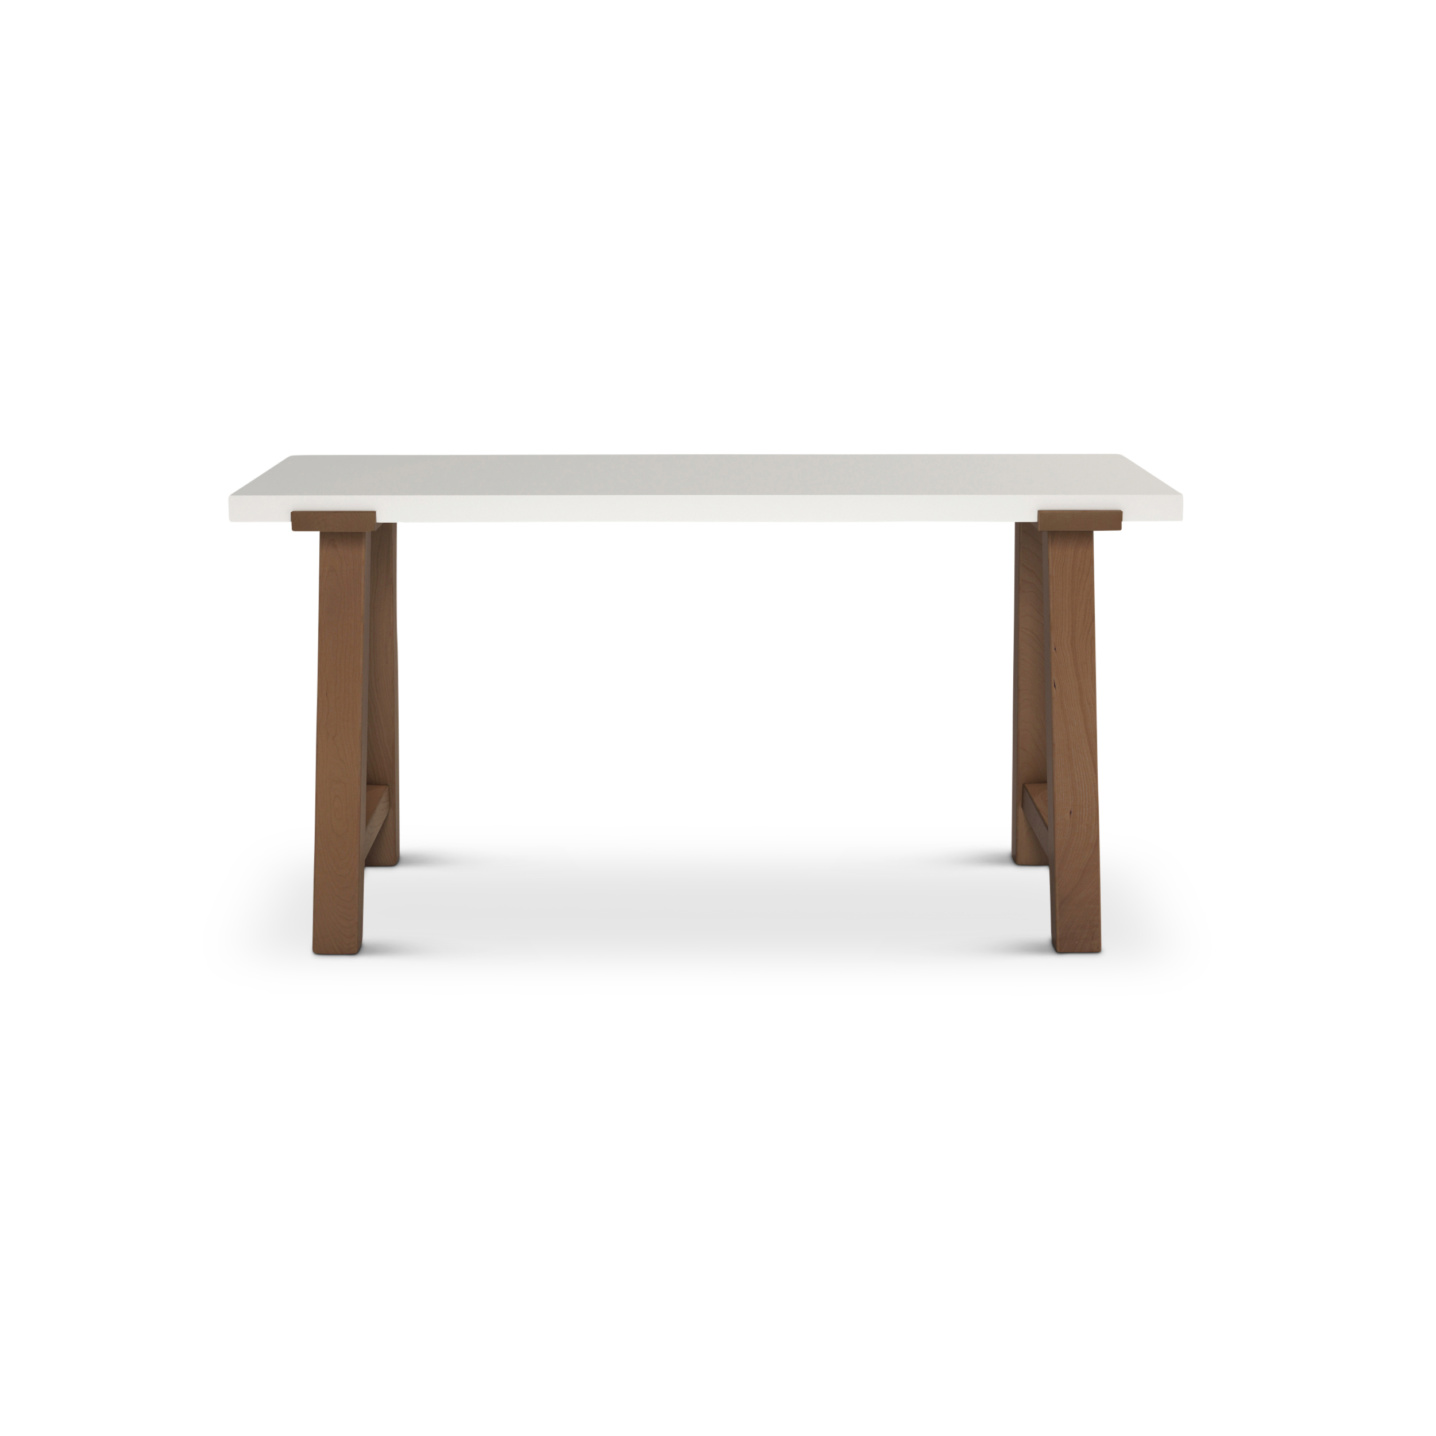 Solid cherry wood desk with white maple top